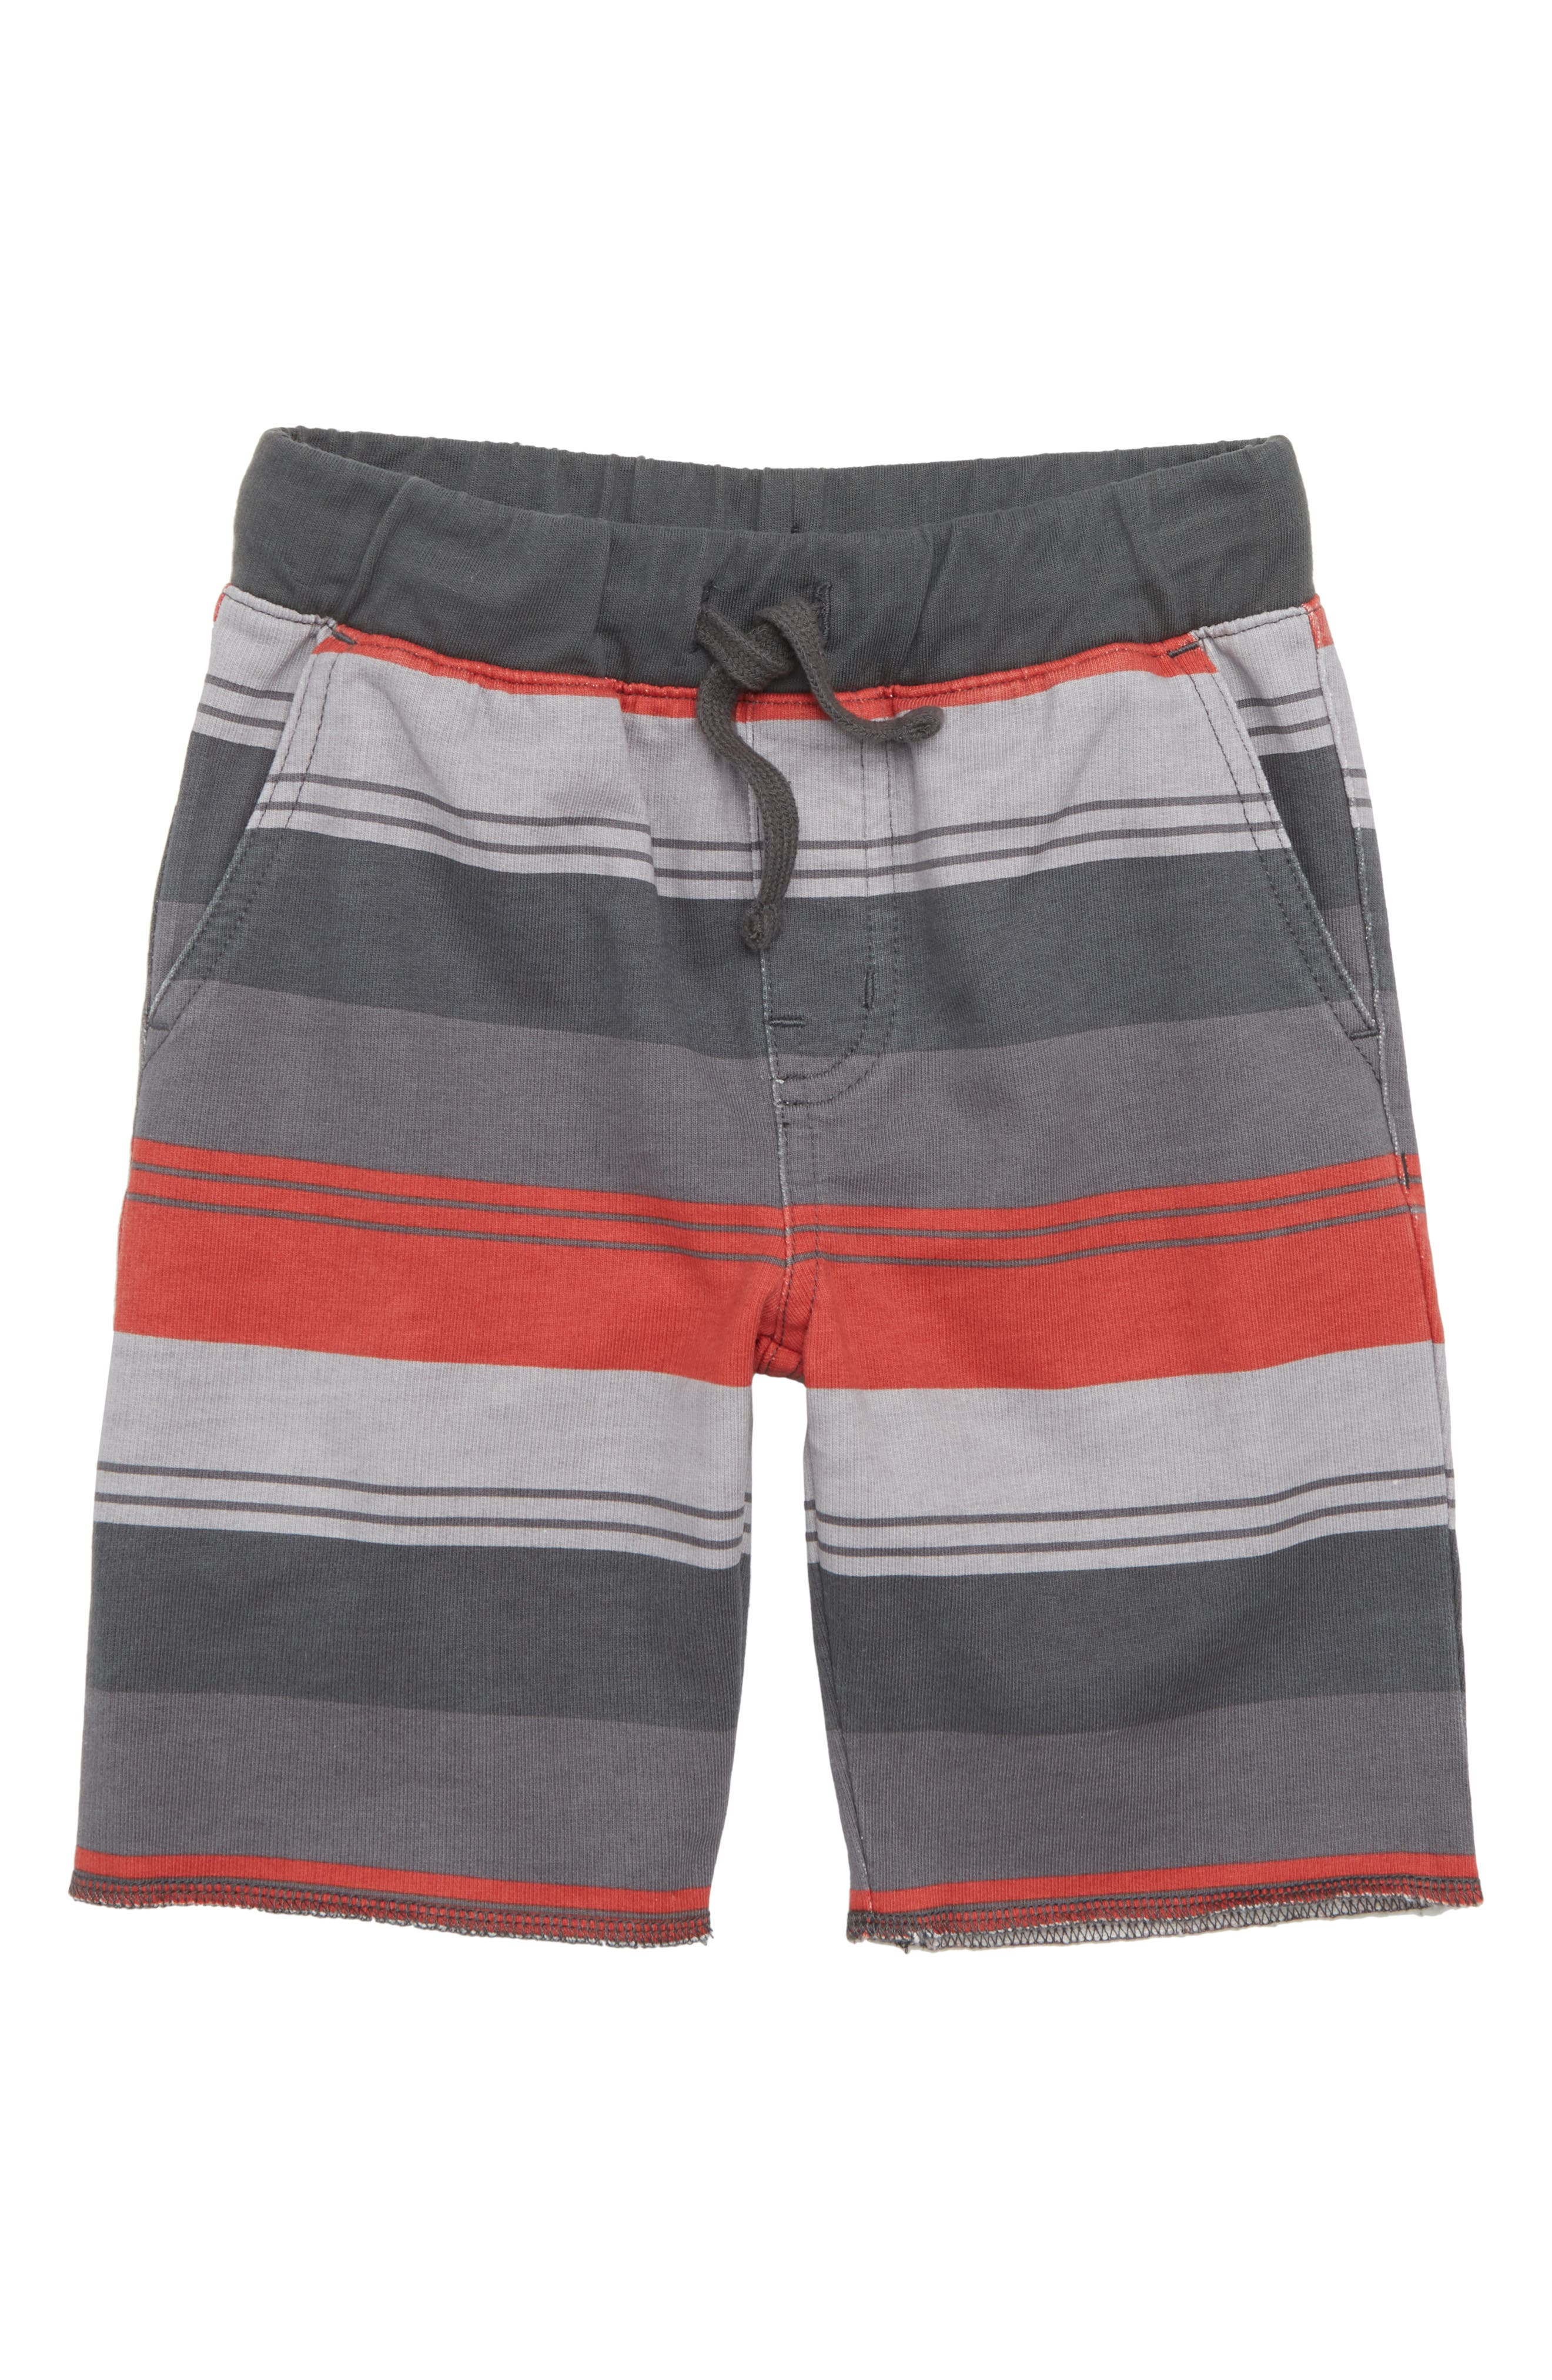 Stripe Cruiser Shorts,                         Main,                         color, 023